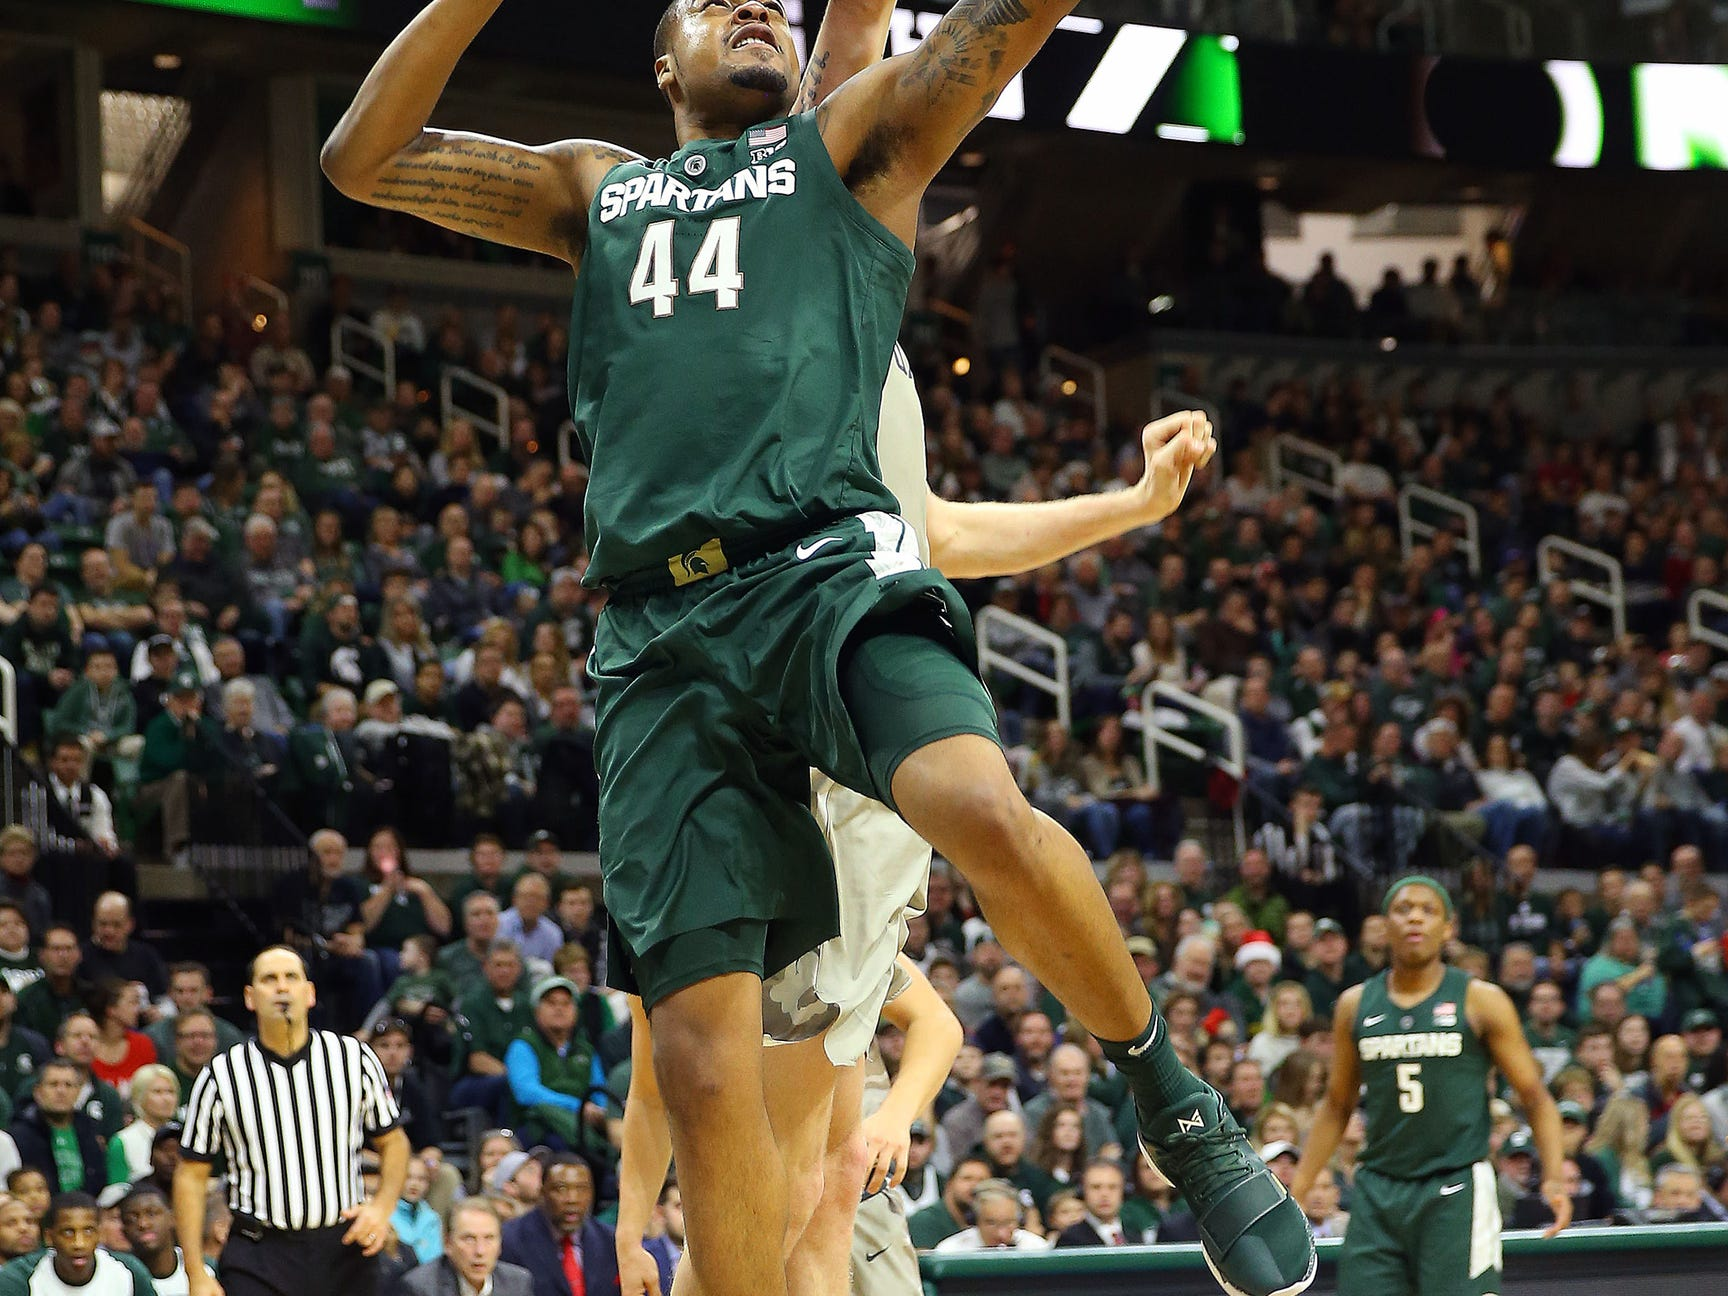 Michigan State Spartans forward Nick Ward (44) lays the ball up against the Oakland Golden Grizzlies during the second half of a game at the Breslin Center.